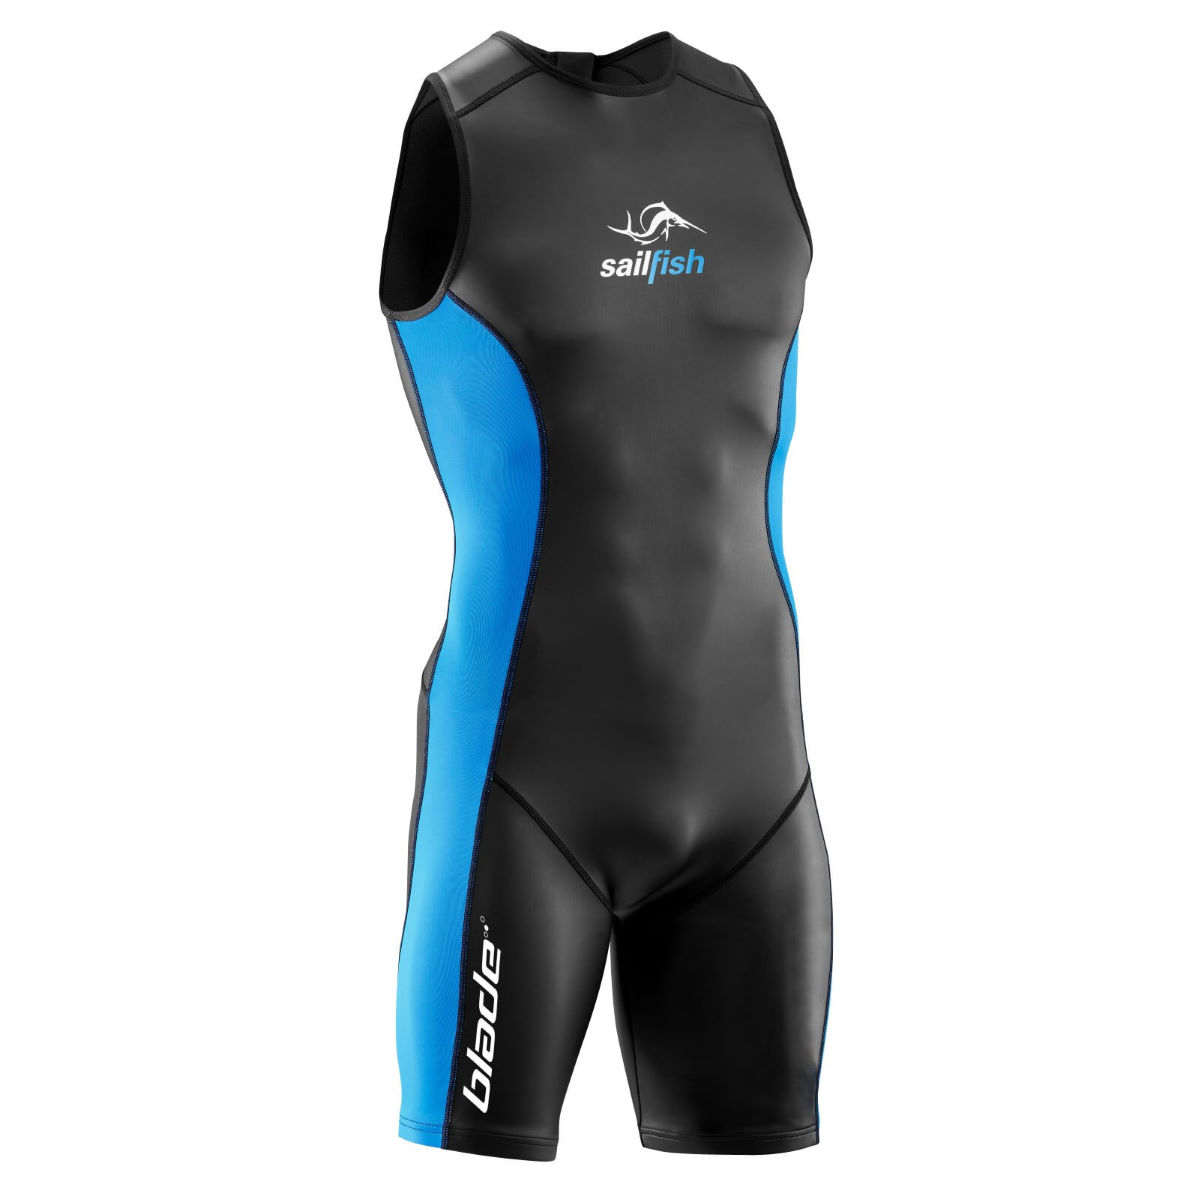 Sailfish Neoprene Shorty Blade Wetsuit - X Small Black/Blue | Wetsuits